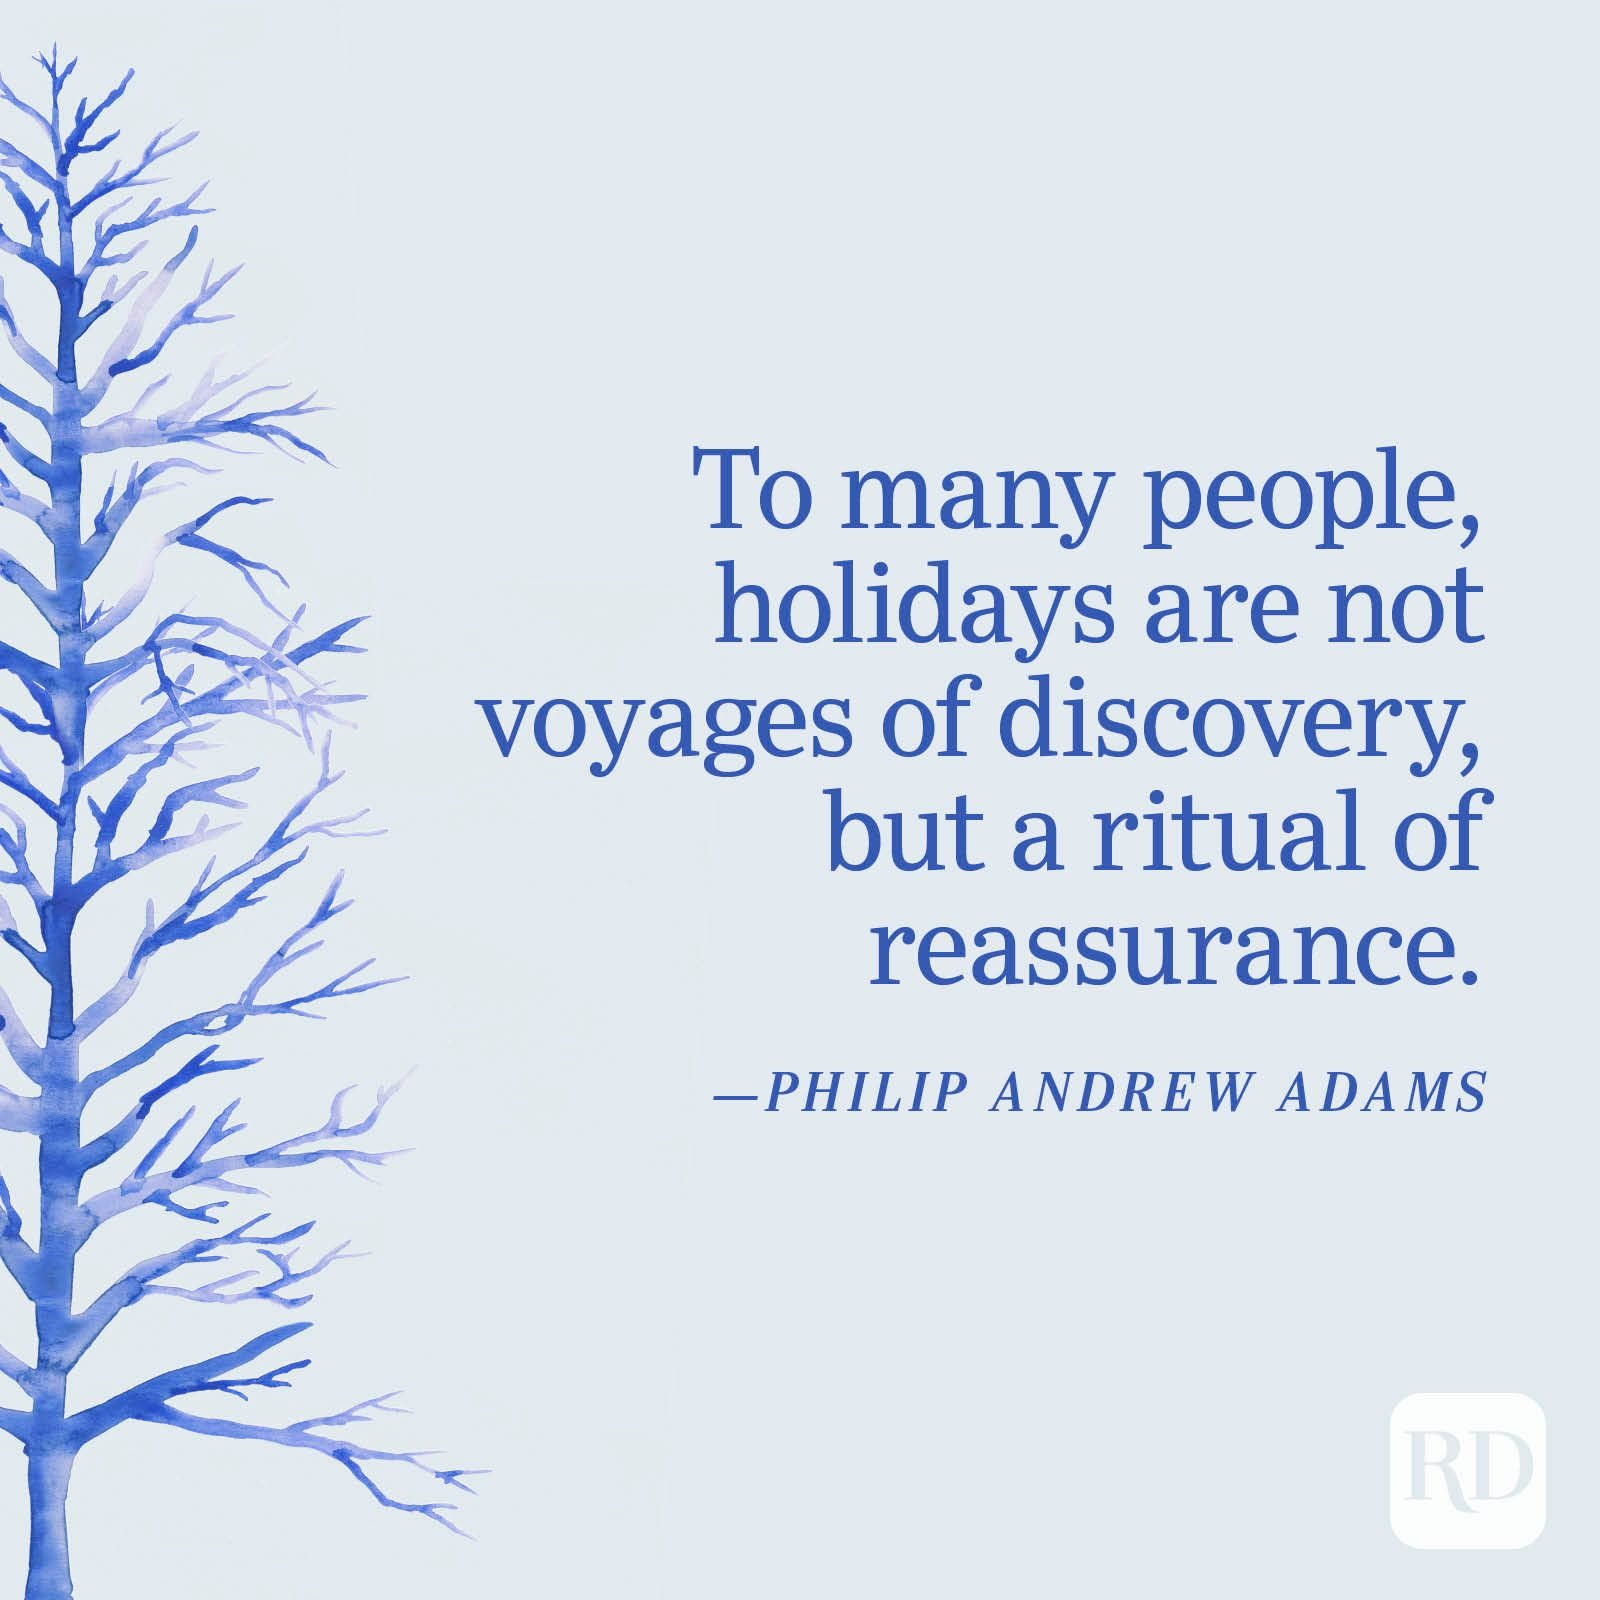 """""""To many people, holidays are not voyages of discovery, but a ritual of reassurance."""" —Philip Andrew Adams"""